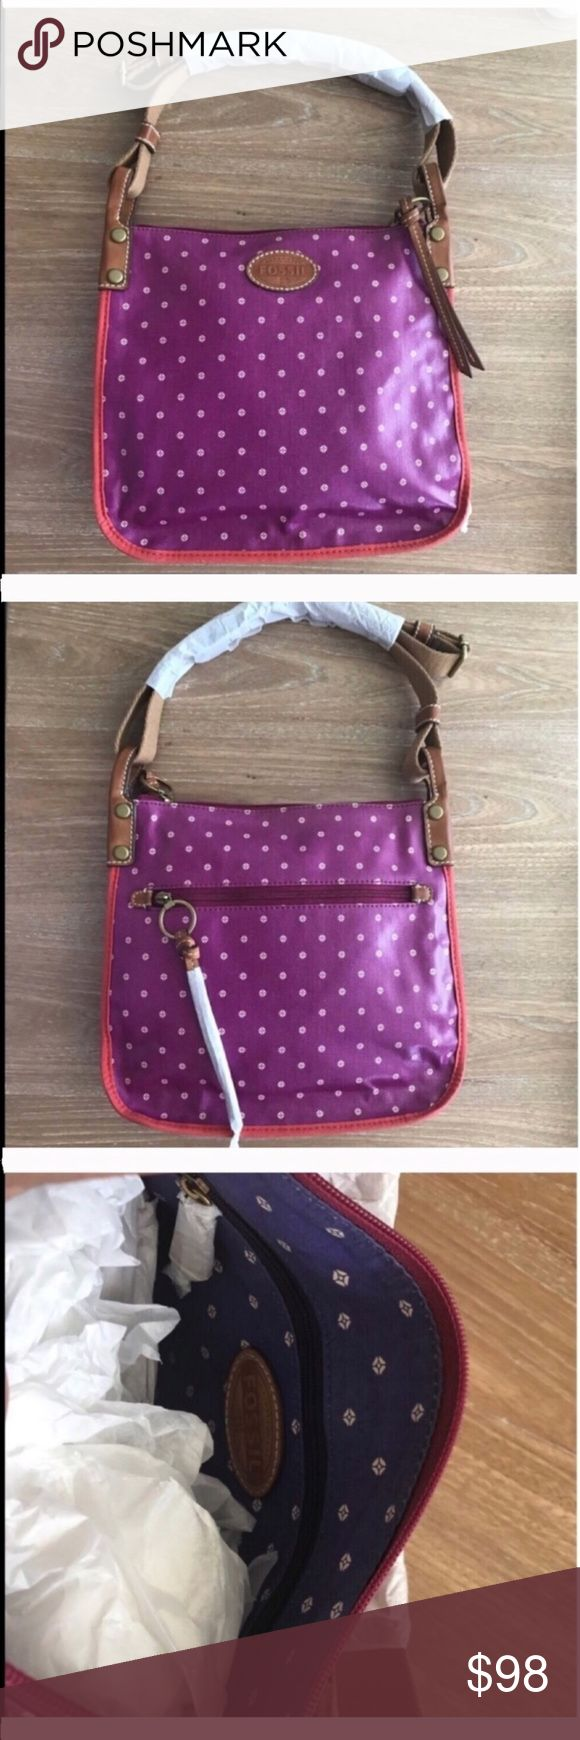 "FOSSIL KEY PER MAGENTA CROSS BODY SHOULDER BAG 💗Condition: NEW WITH OUT TAGS. No flaws, no rips, holes or stains. Measures approx. 11.5"" X 10"" x 2.5"" Strap length 48"", adjustable.. leather straps, nylon and vinyl leather. Shoulder or crossbody.  💗Smoke free home/Pet hair free 💗No trades, No returns. No modeling  💗Shipping next day. Beautiful package! 💗I LOVE OFFERS, offer me! 💗ALL ITEMS ARE OWNED BY ME. NOT FROM THRIFT STORES 💗All transactions video recorded to ensure quality.  💗Ask…"